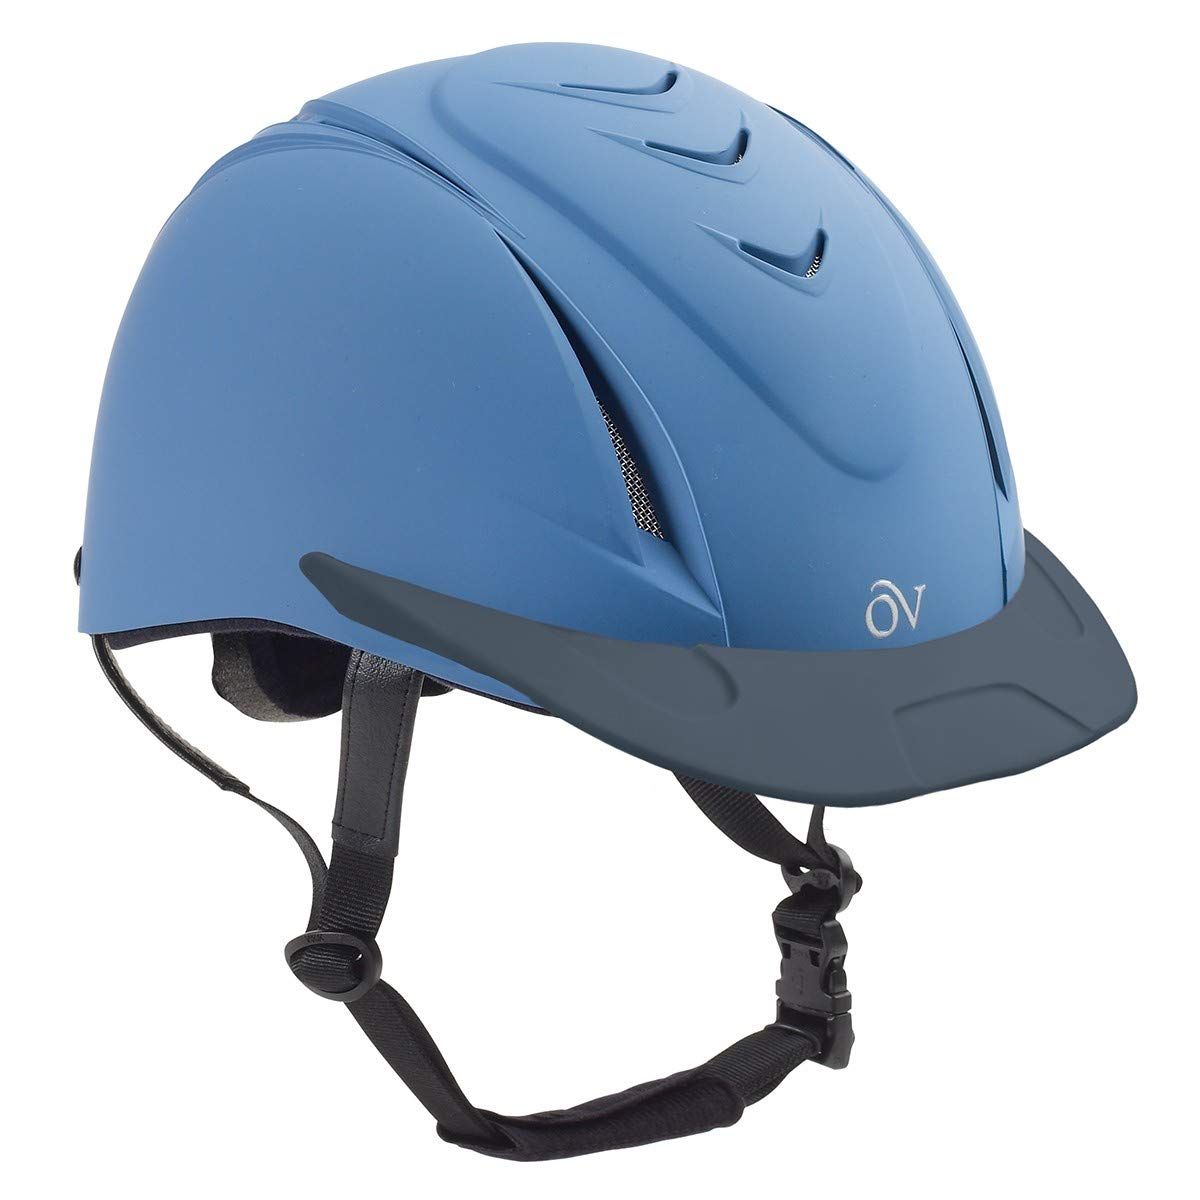 Ovation Female Deluxe Ventilated Riding Helmet